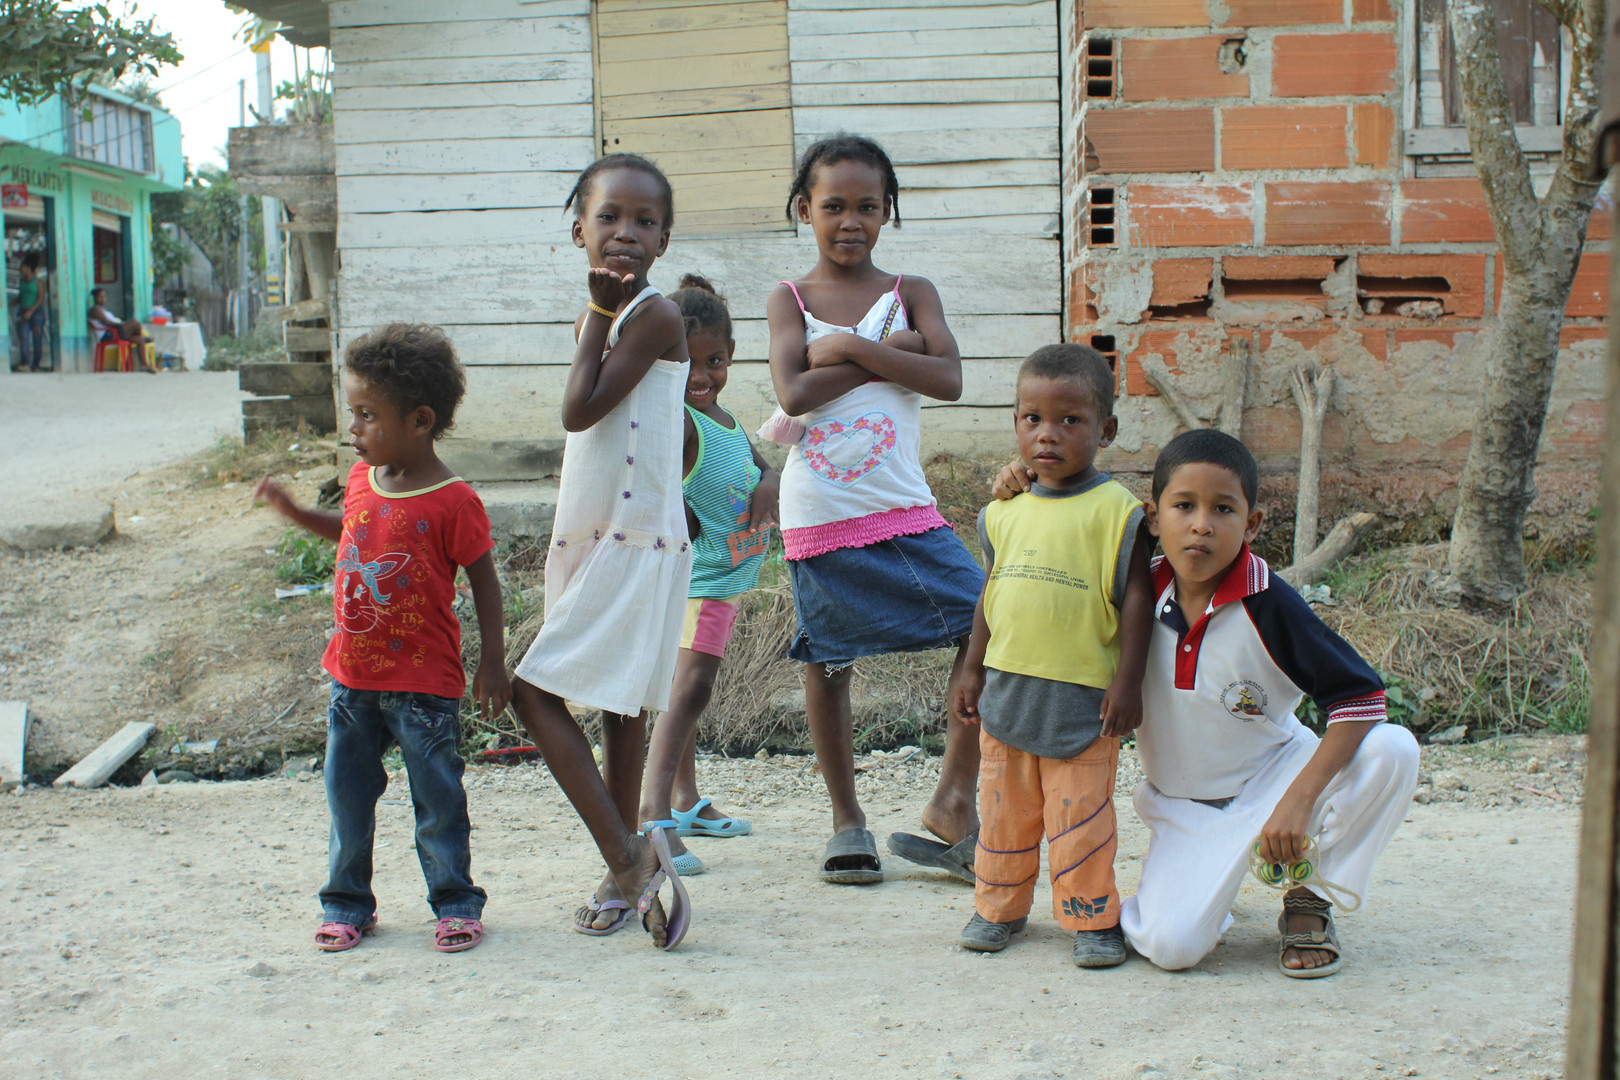 Displaced children in Colombia